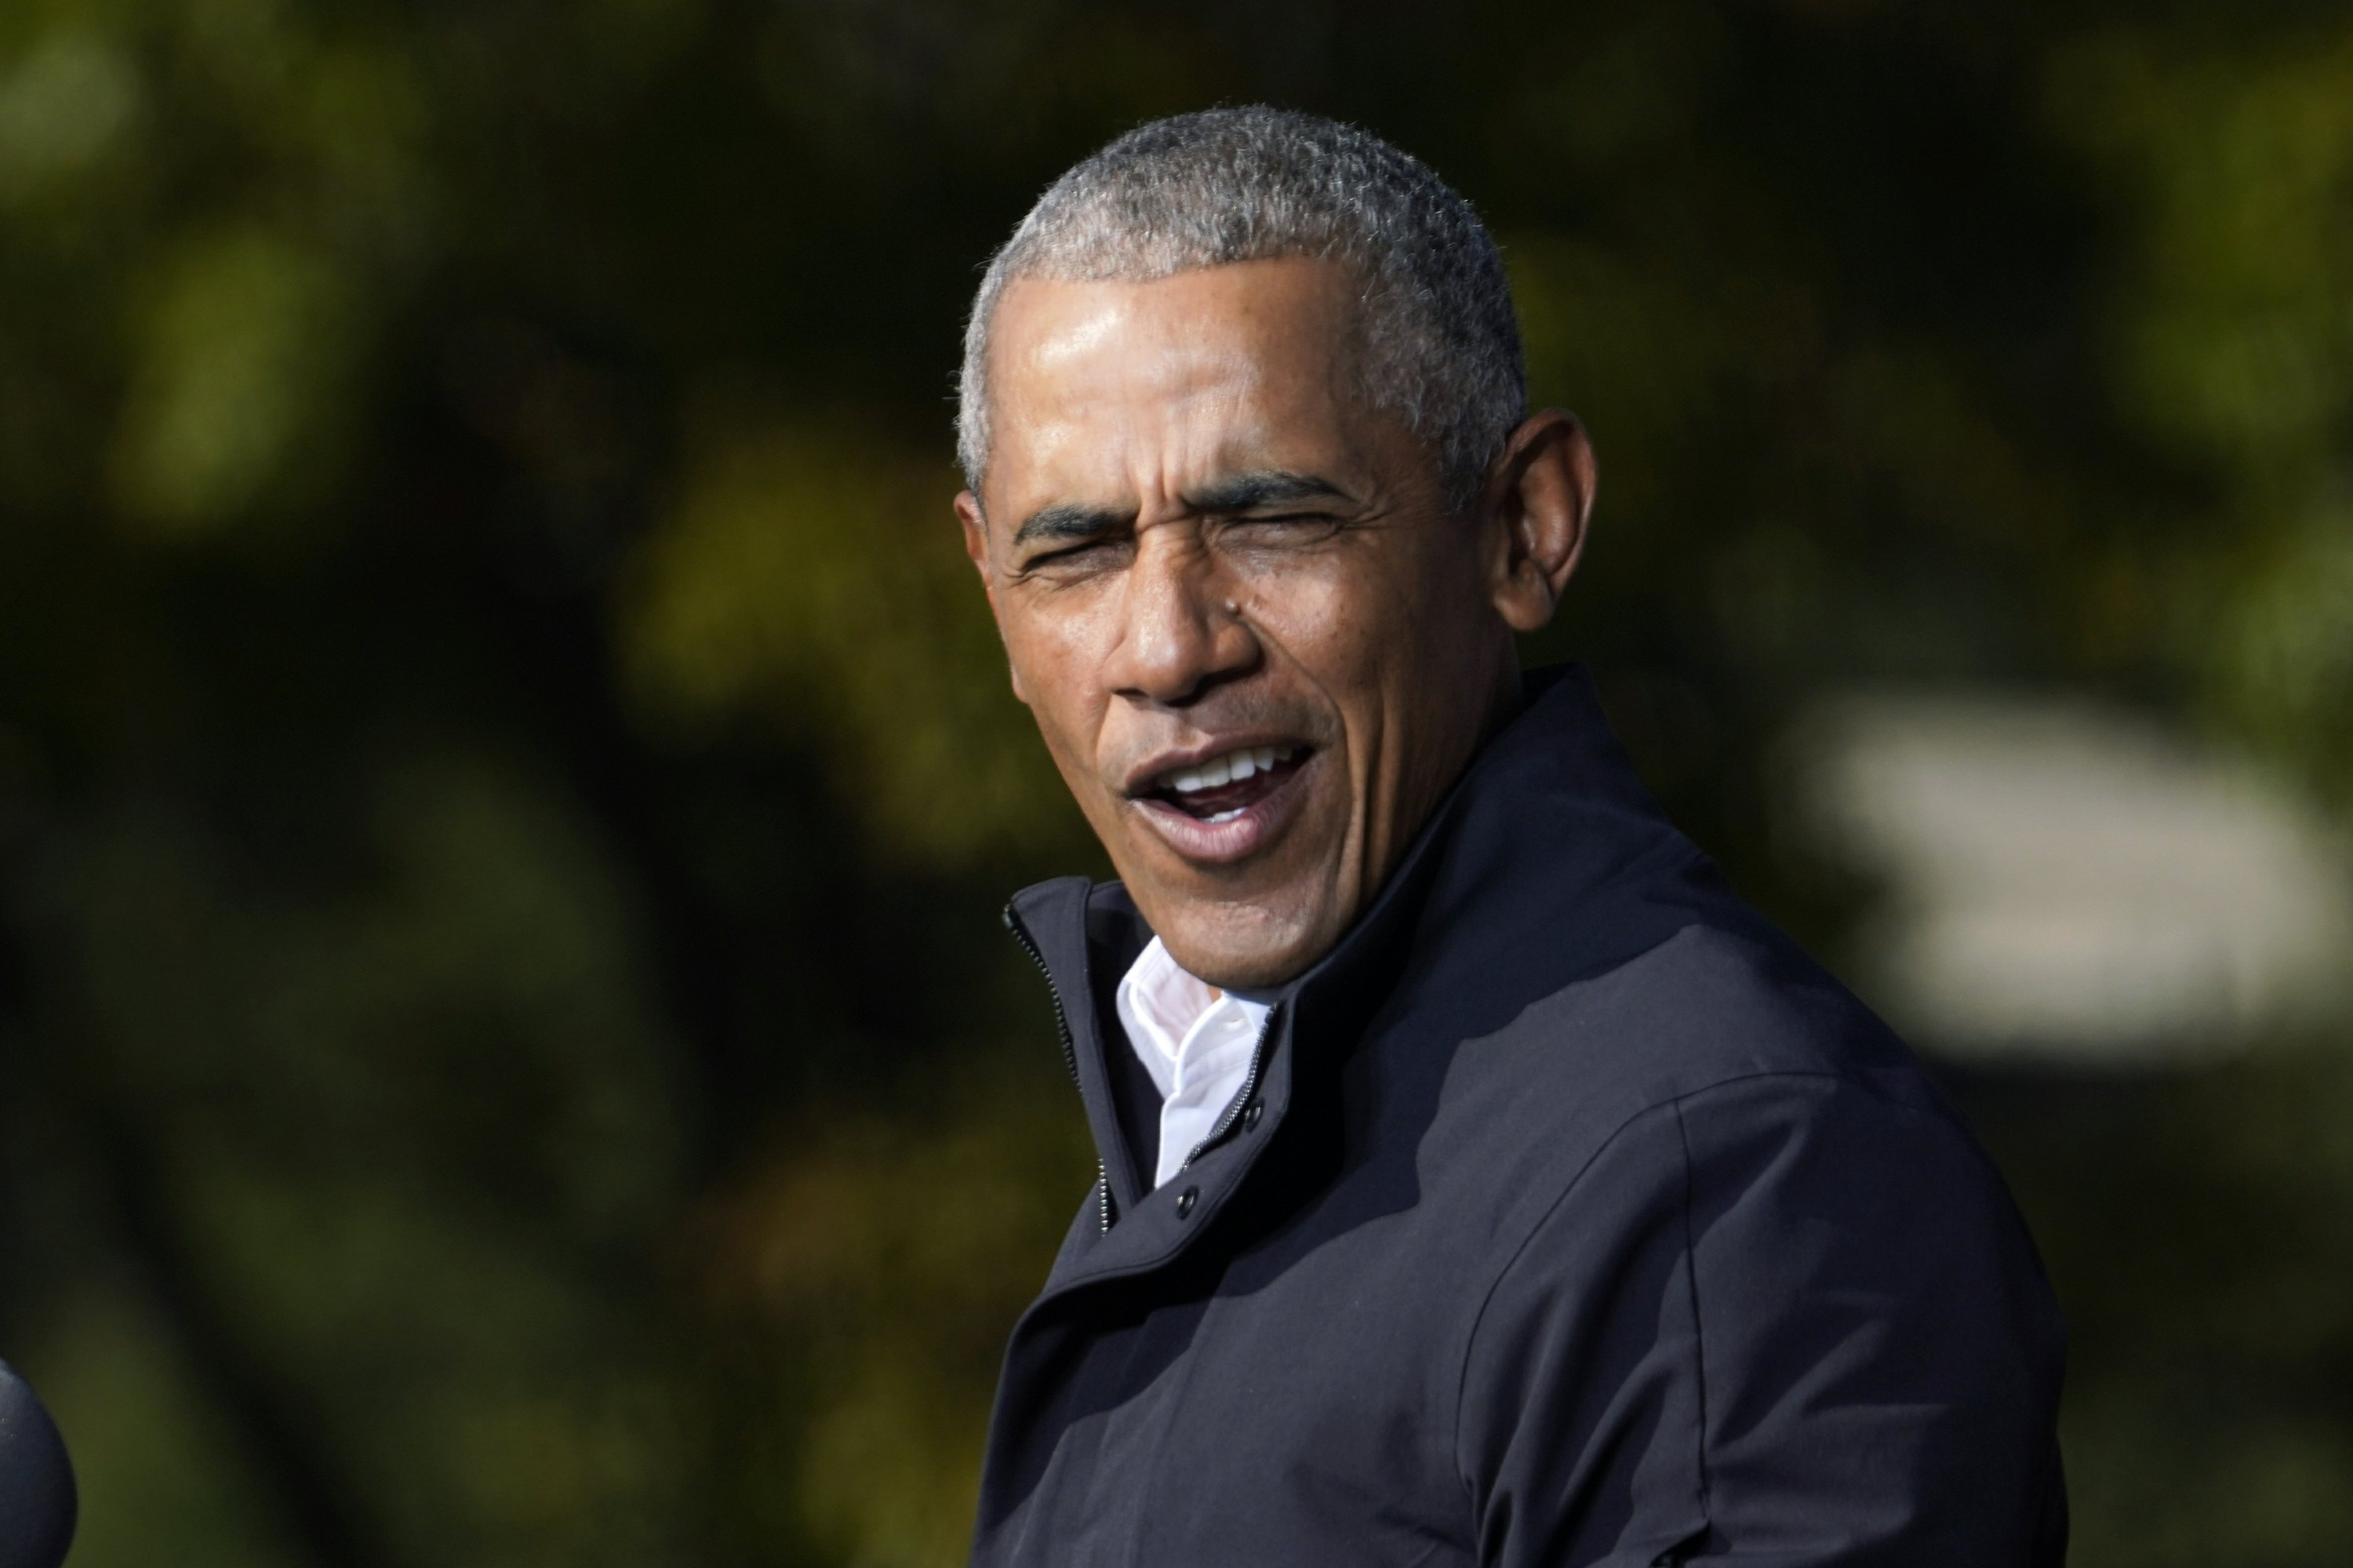 Barack Obama to be honored next month by PEN America